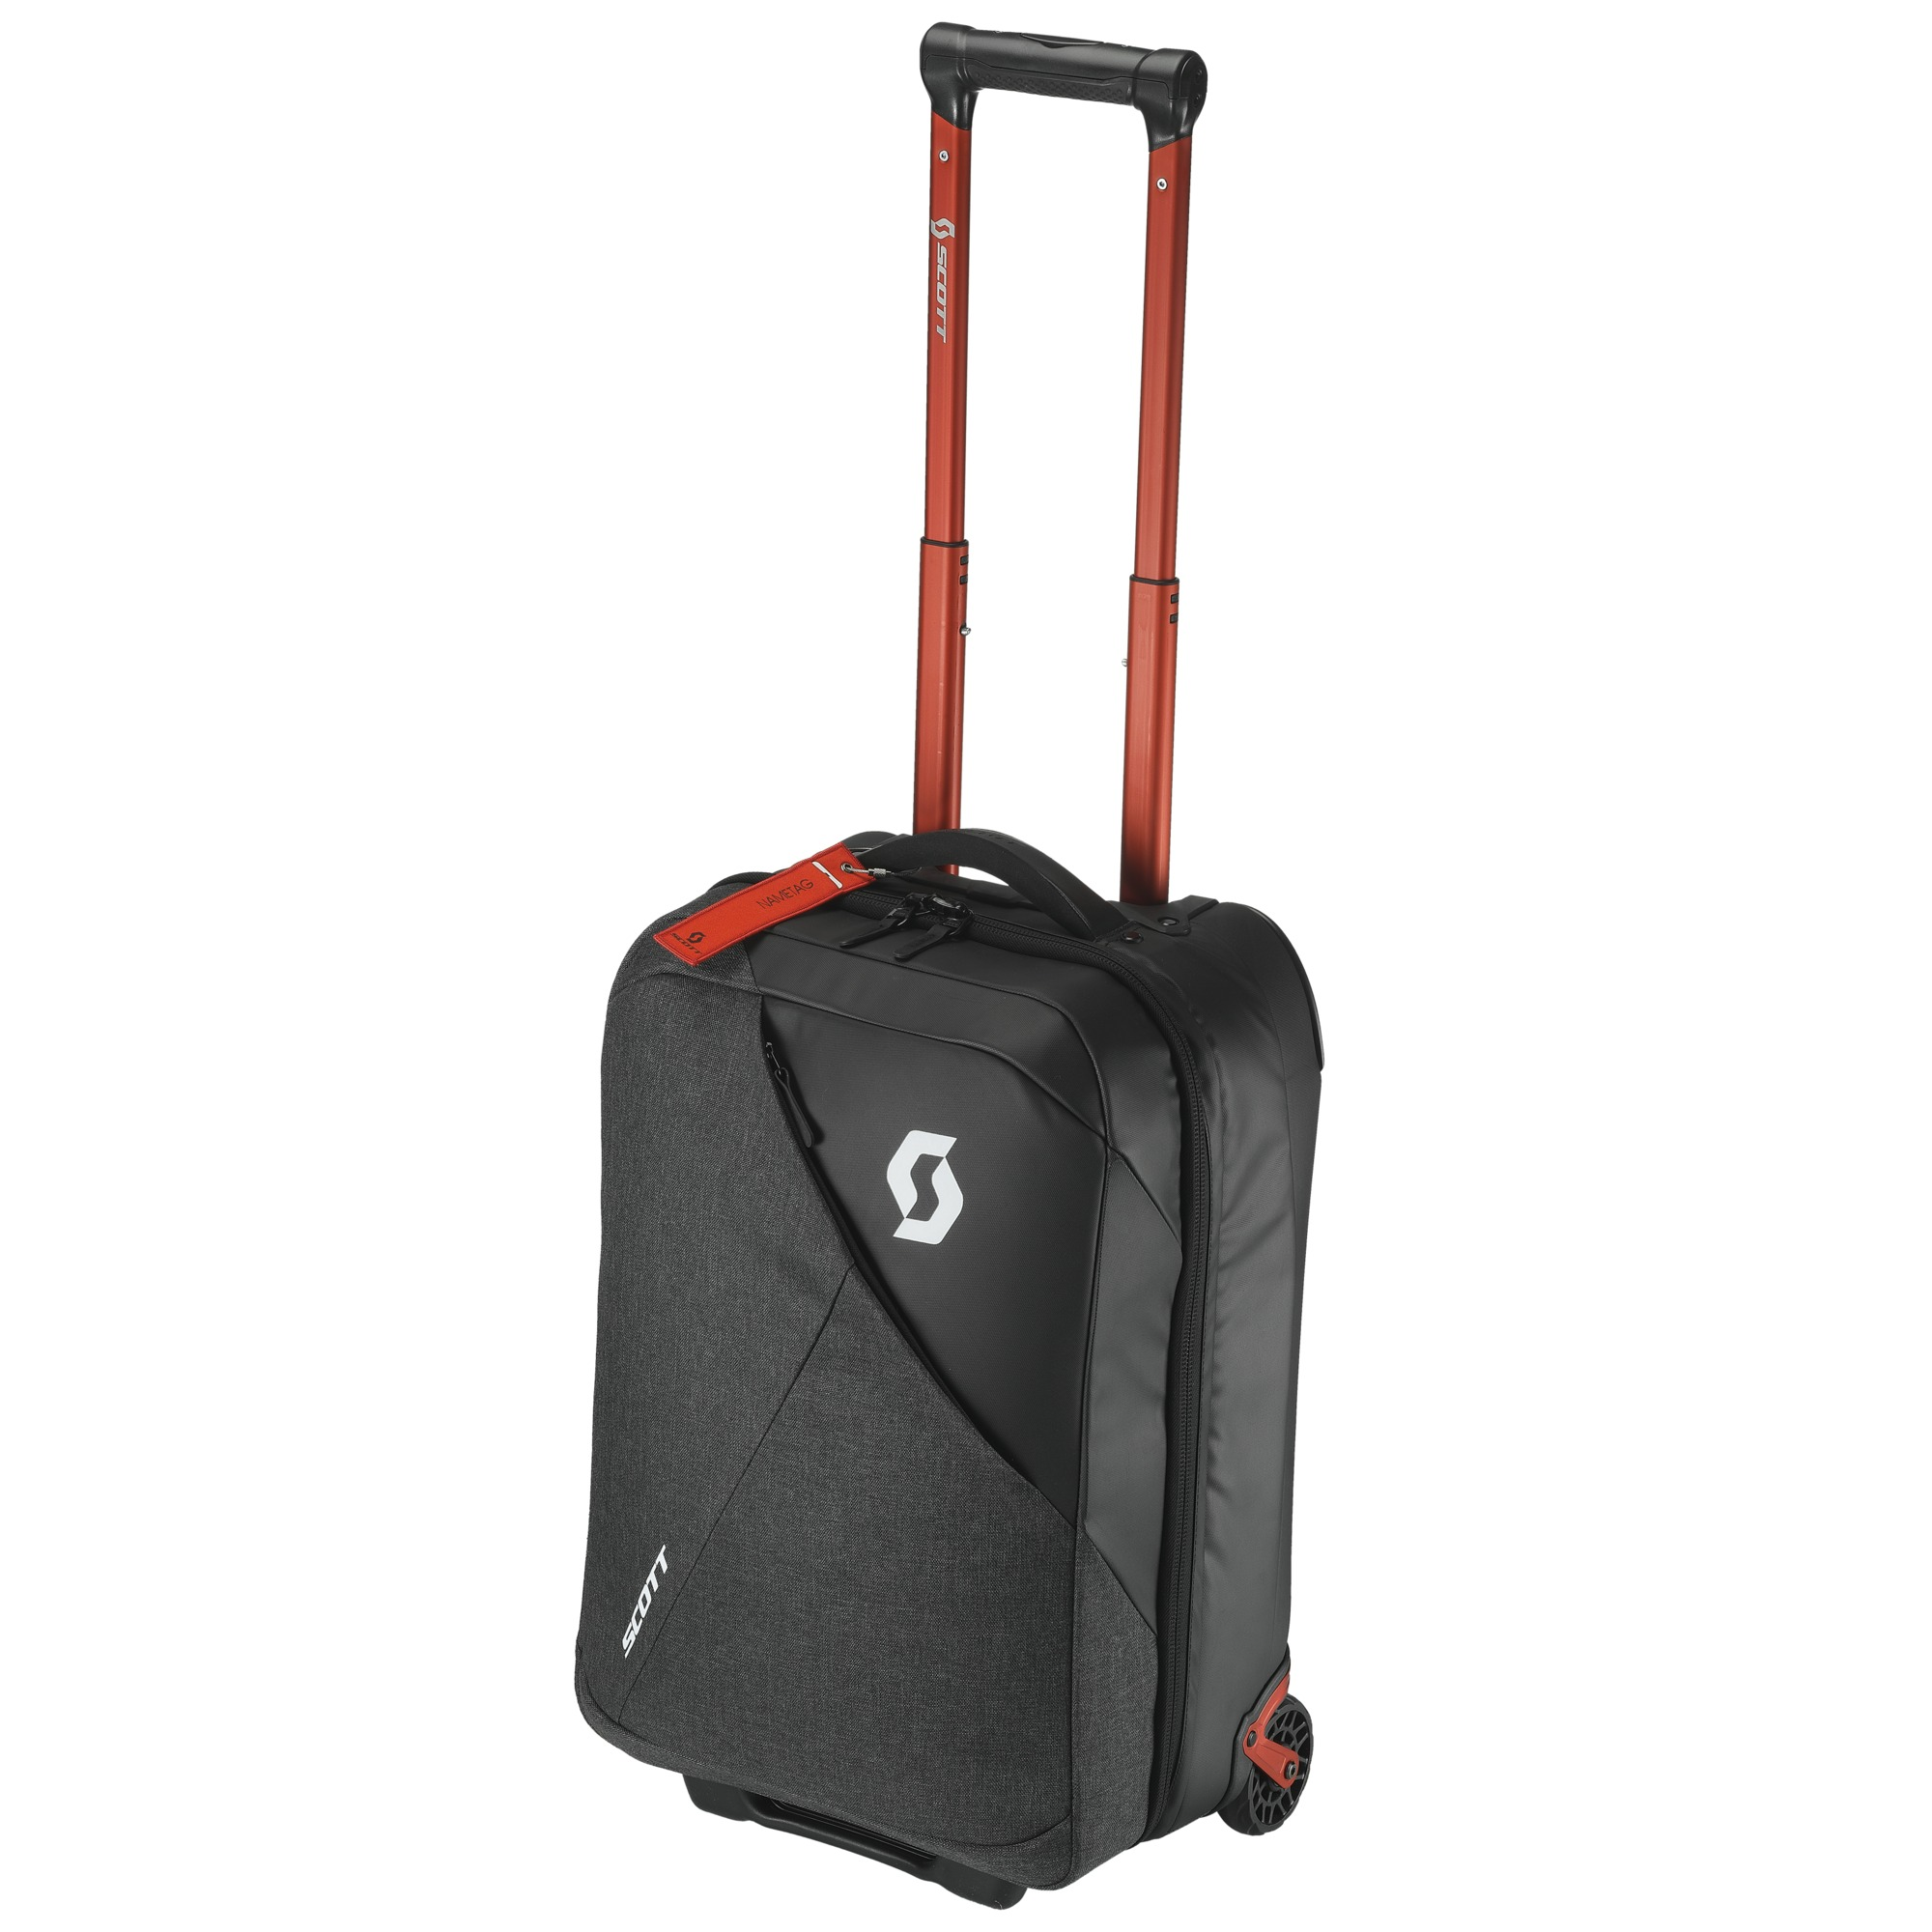 SCOTT Travel Softcase 40 Bag